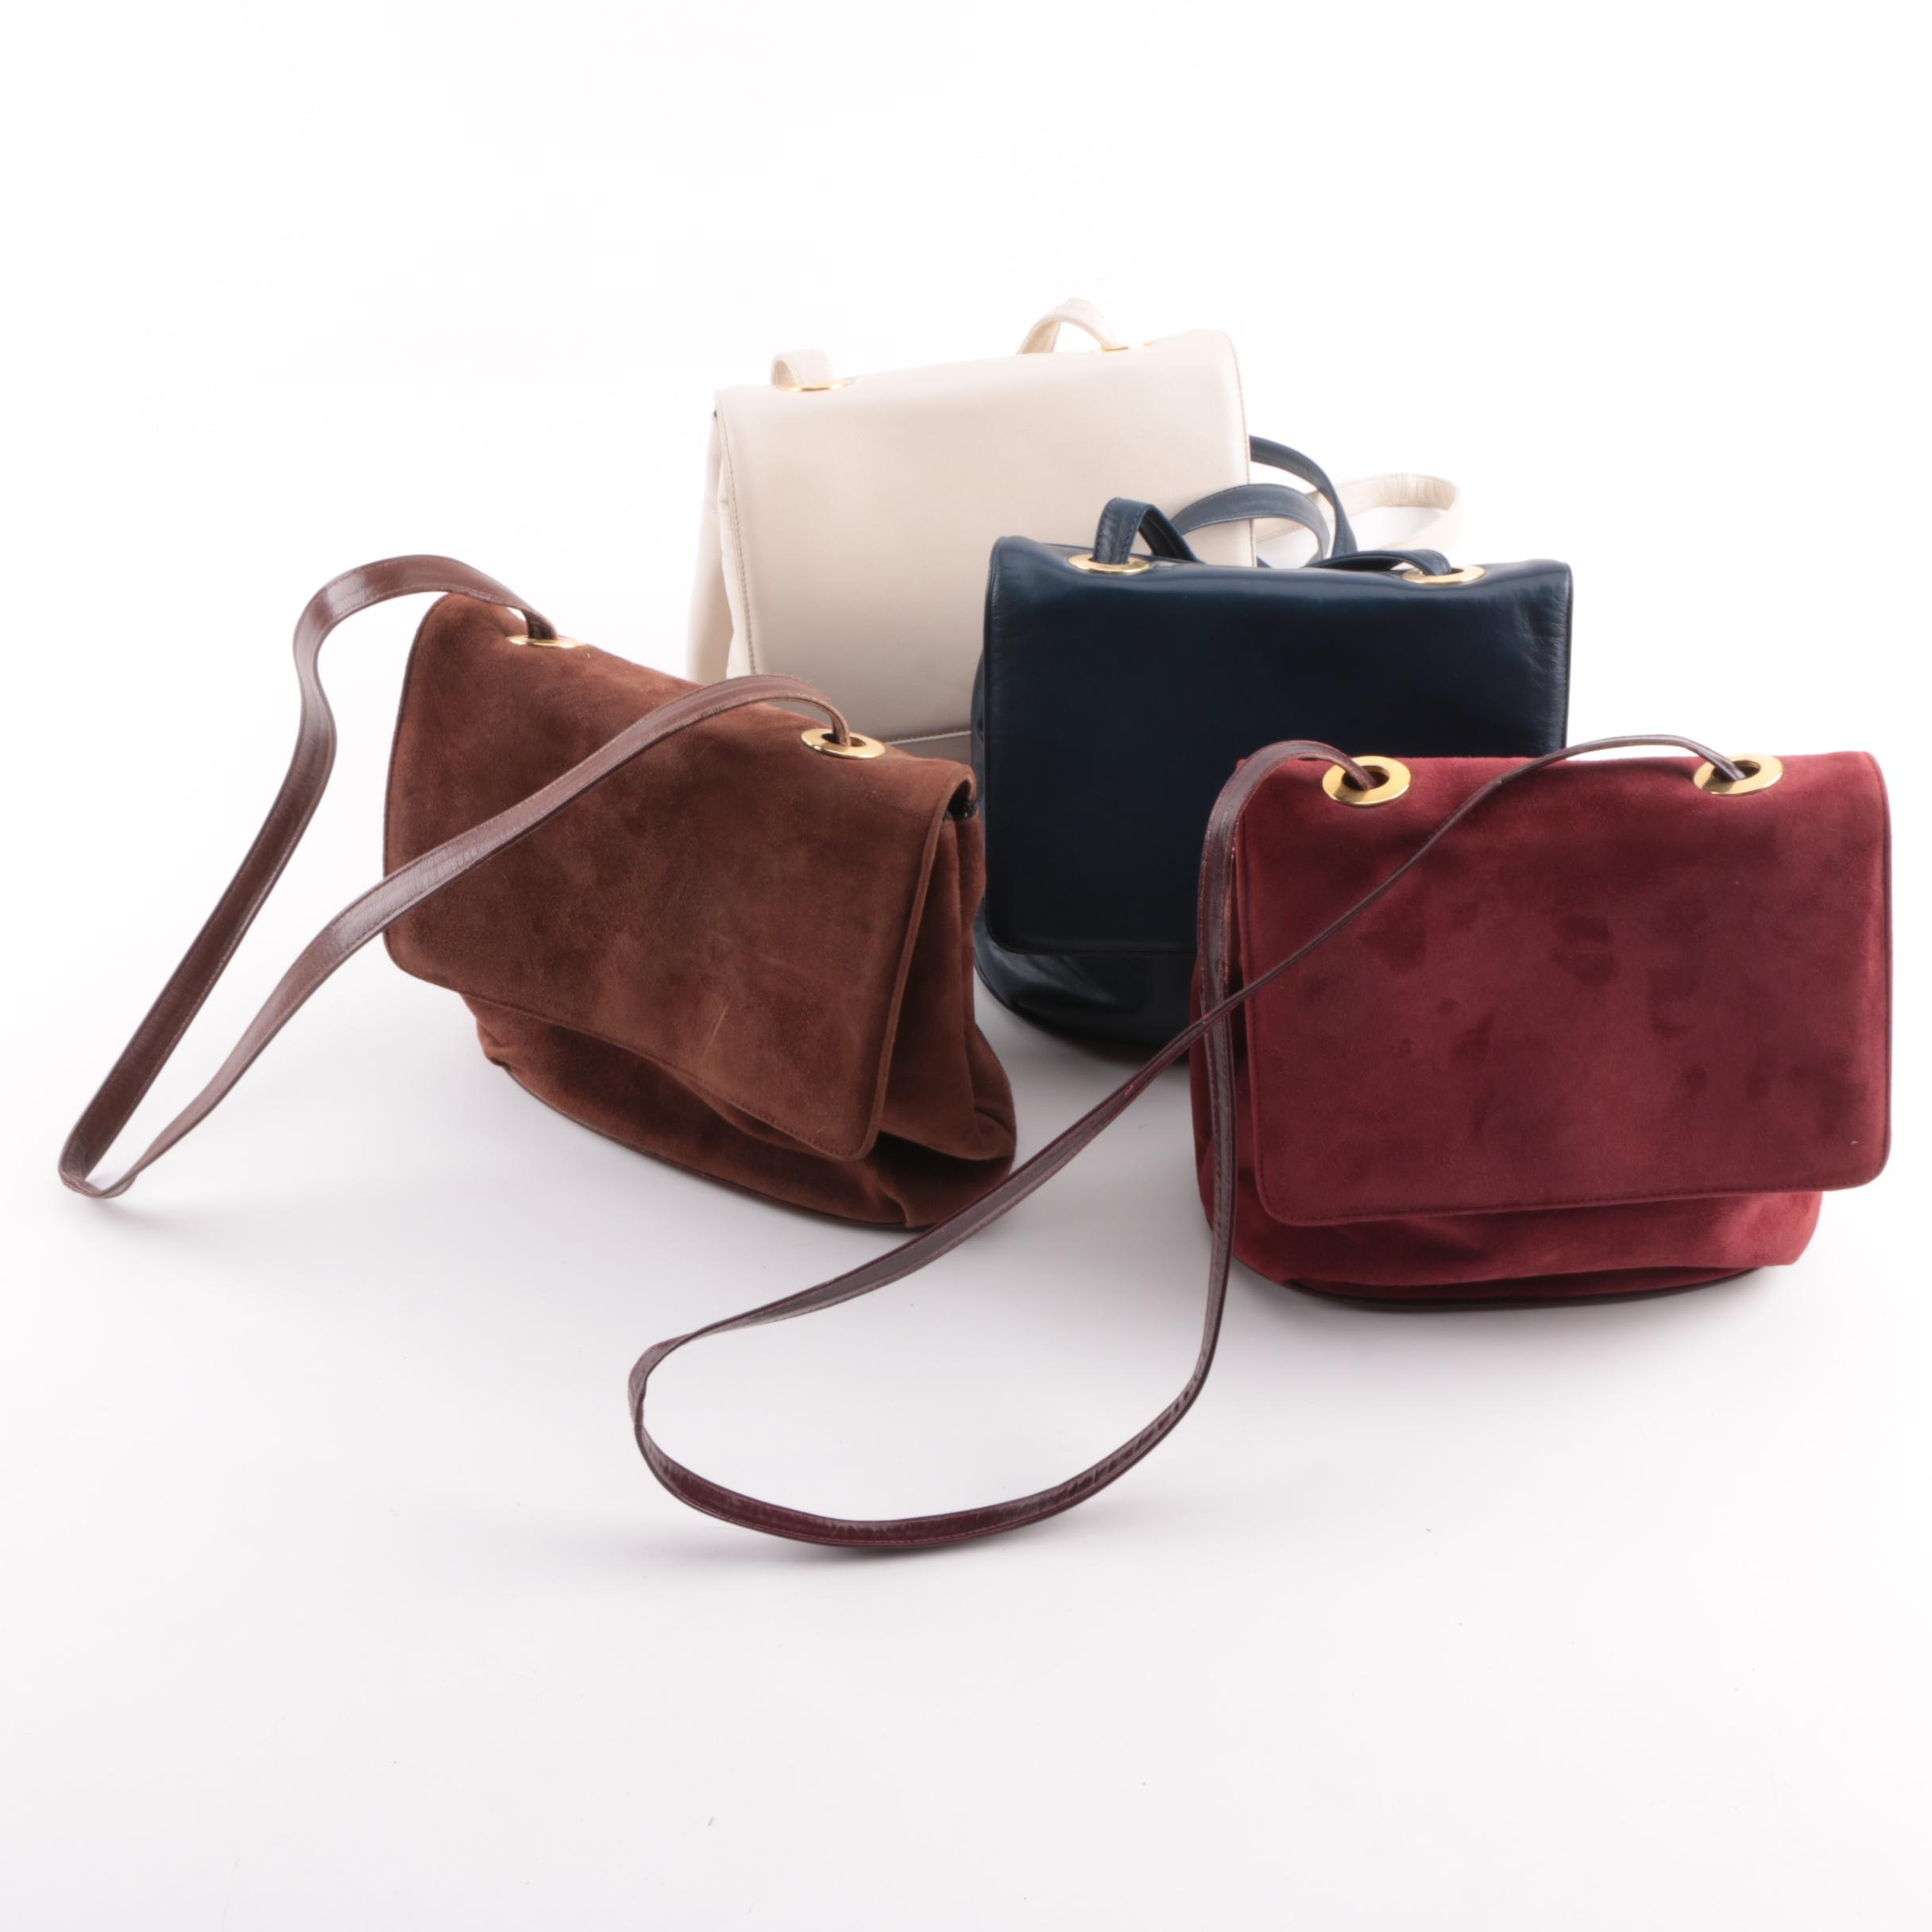 Vintage Frenchy of California Suede and Leather Handbags